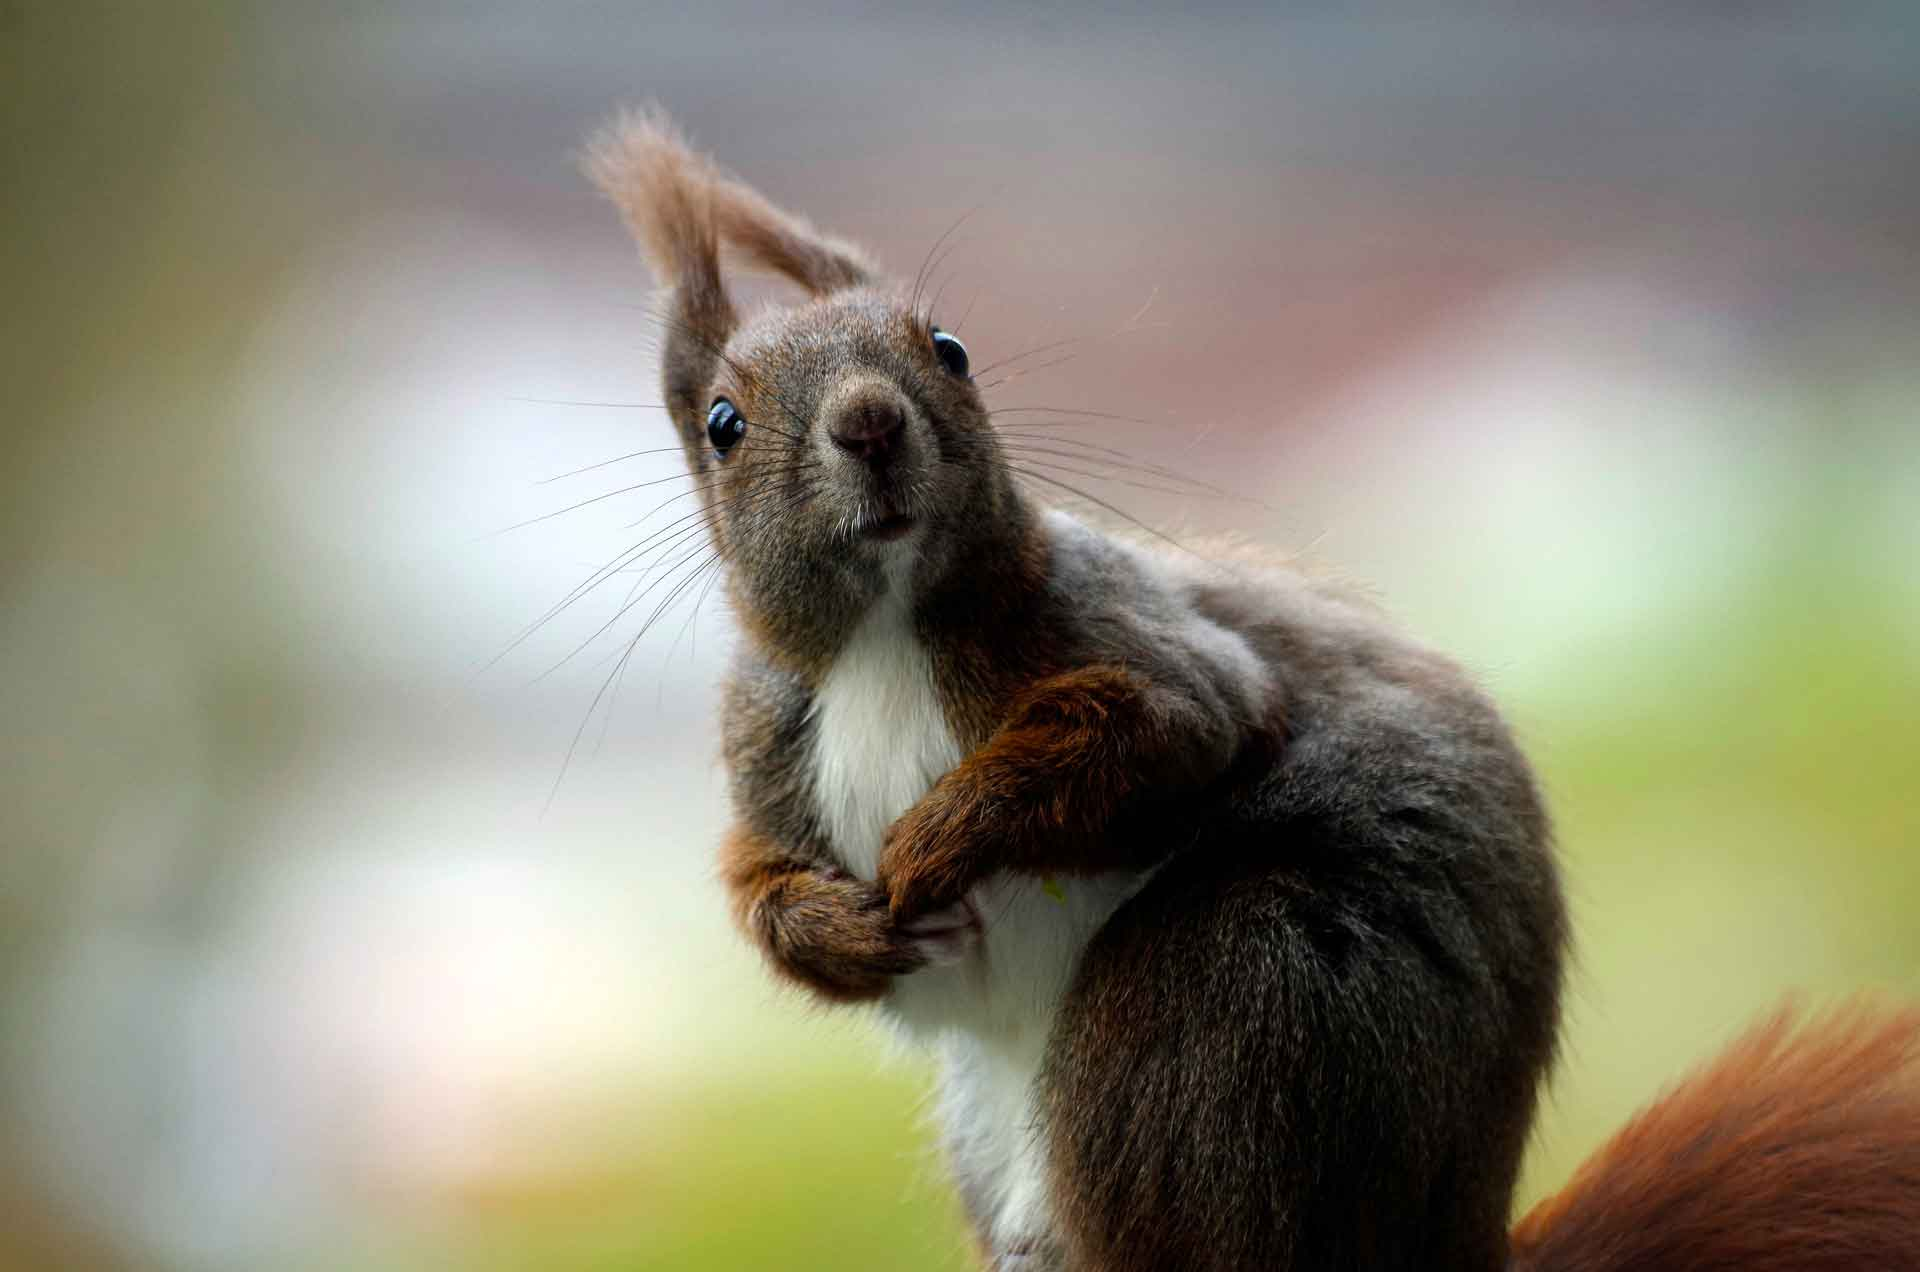 Ooh Look – Squirrels!